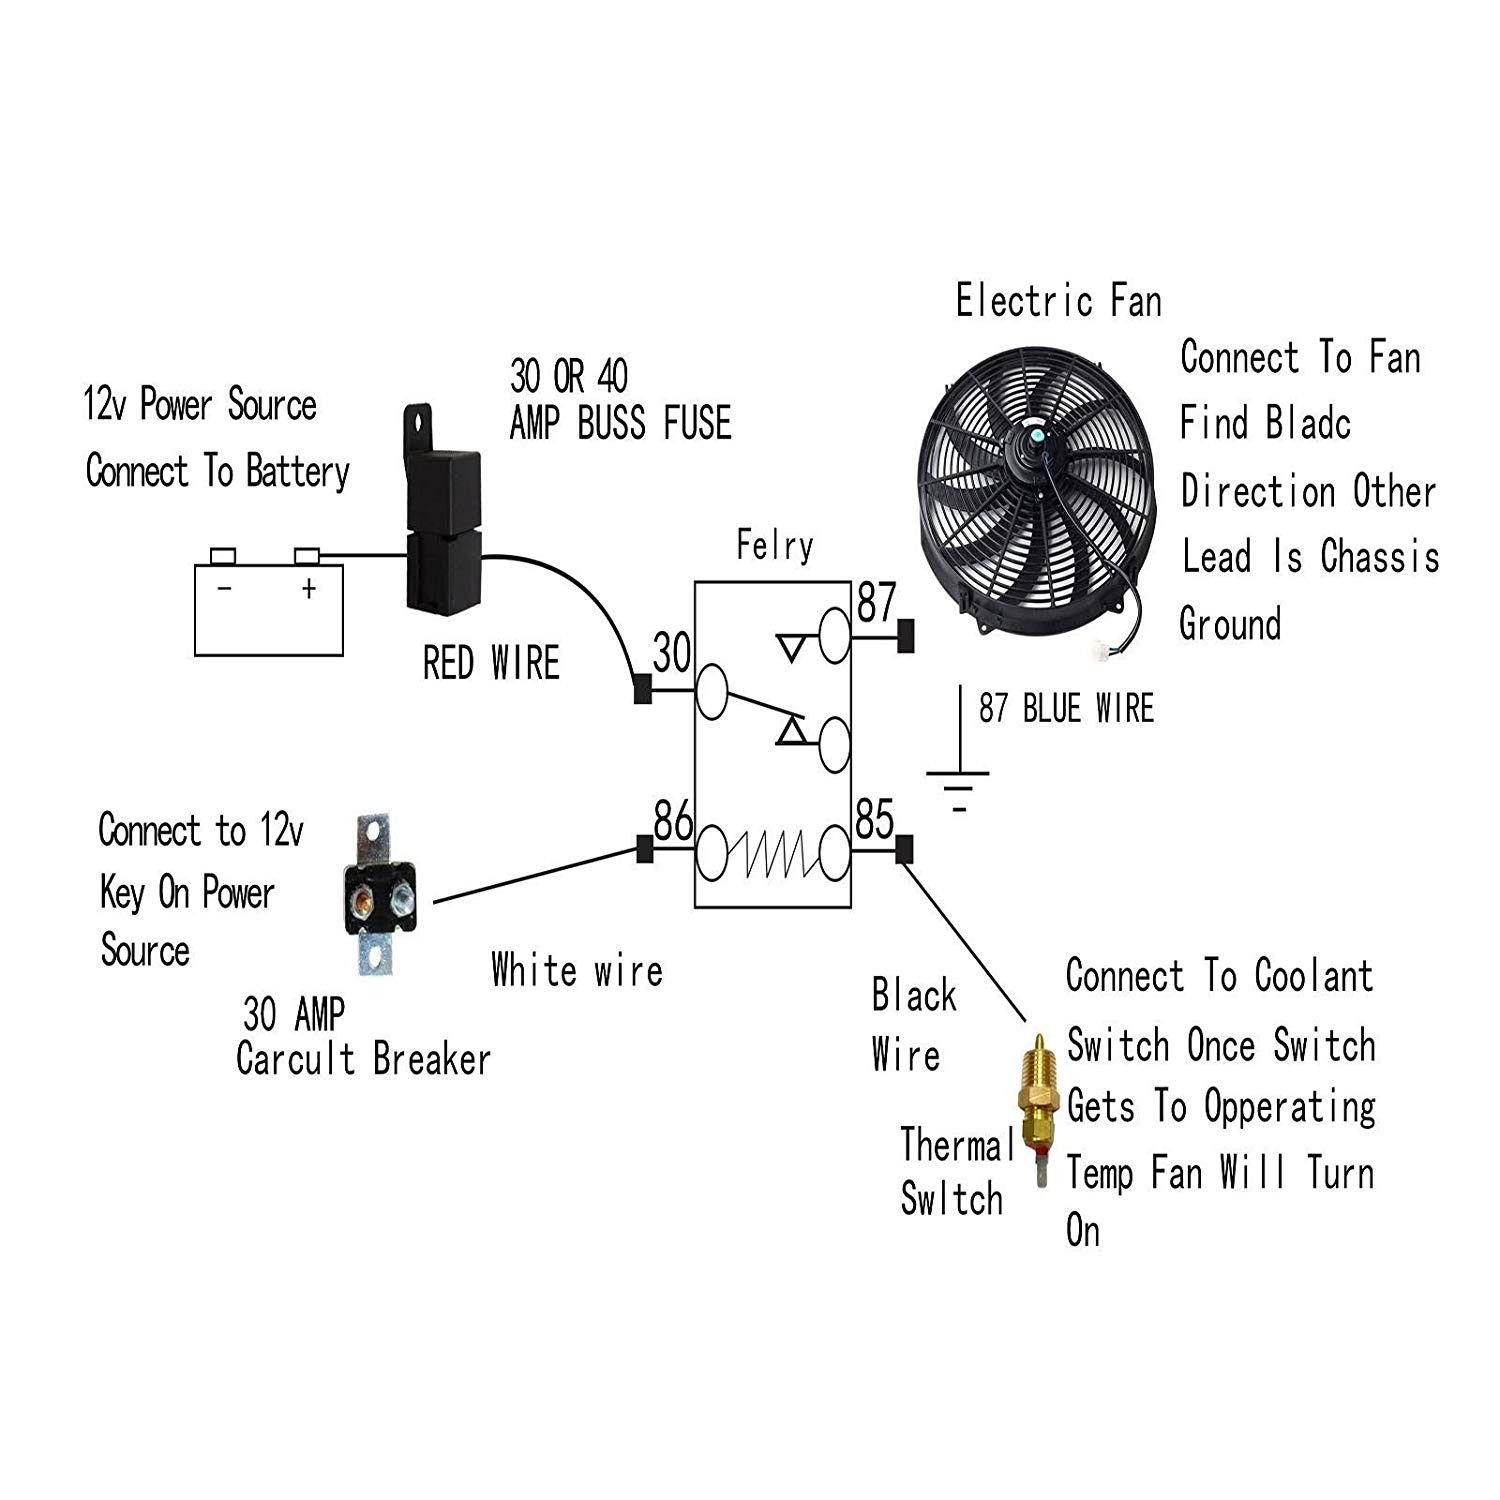 Unique Wiring Diagram for Electric Fan #diagram #